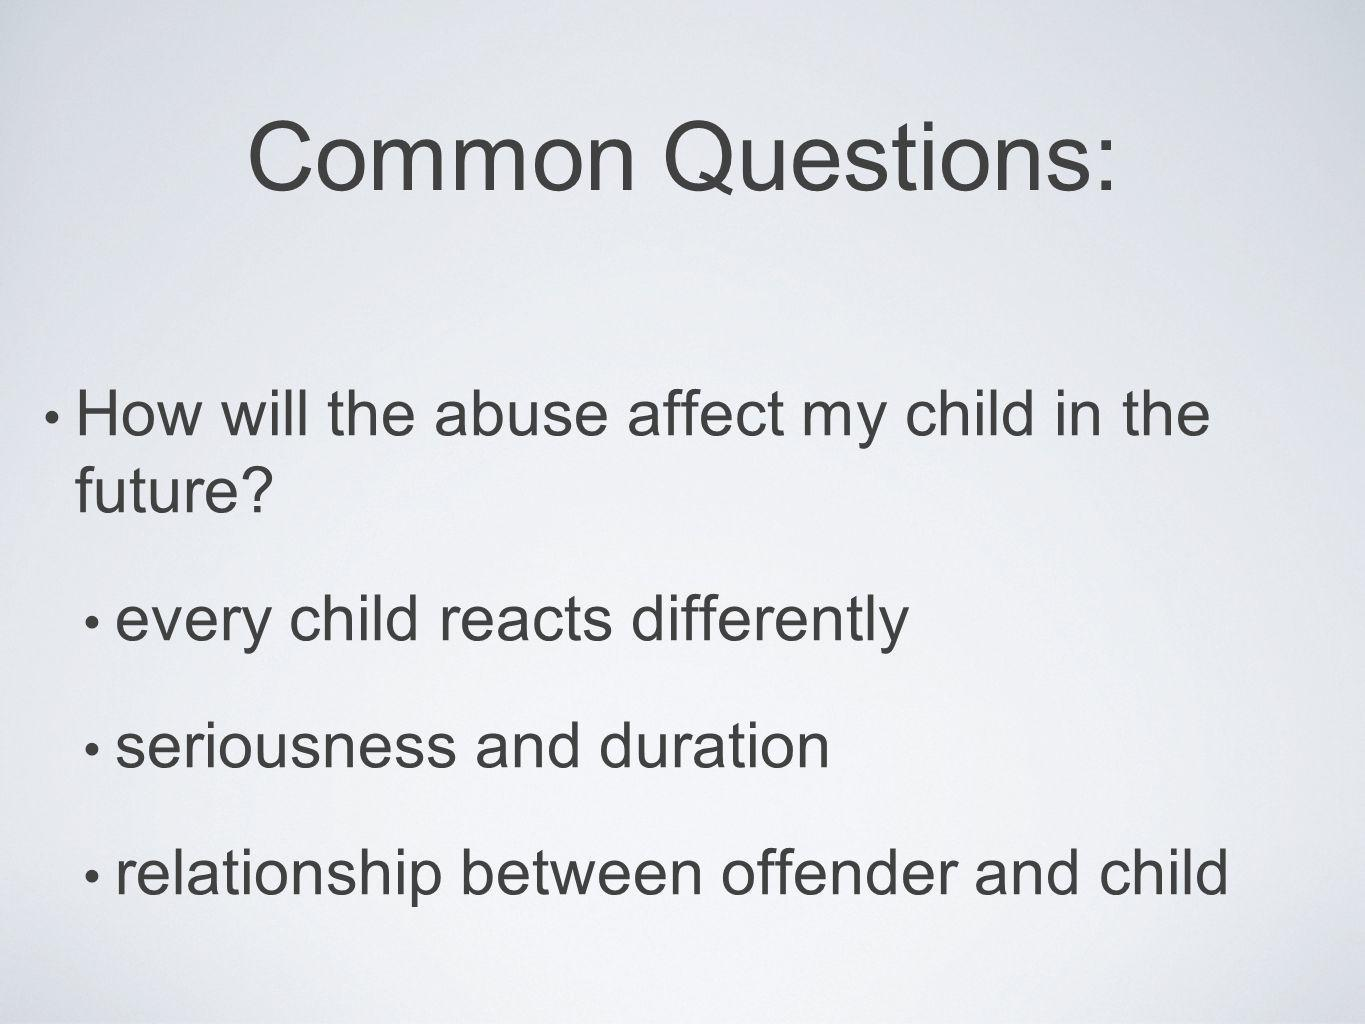 Common Questions: How will the abuse affect my child in the future